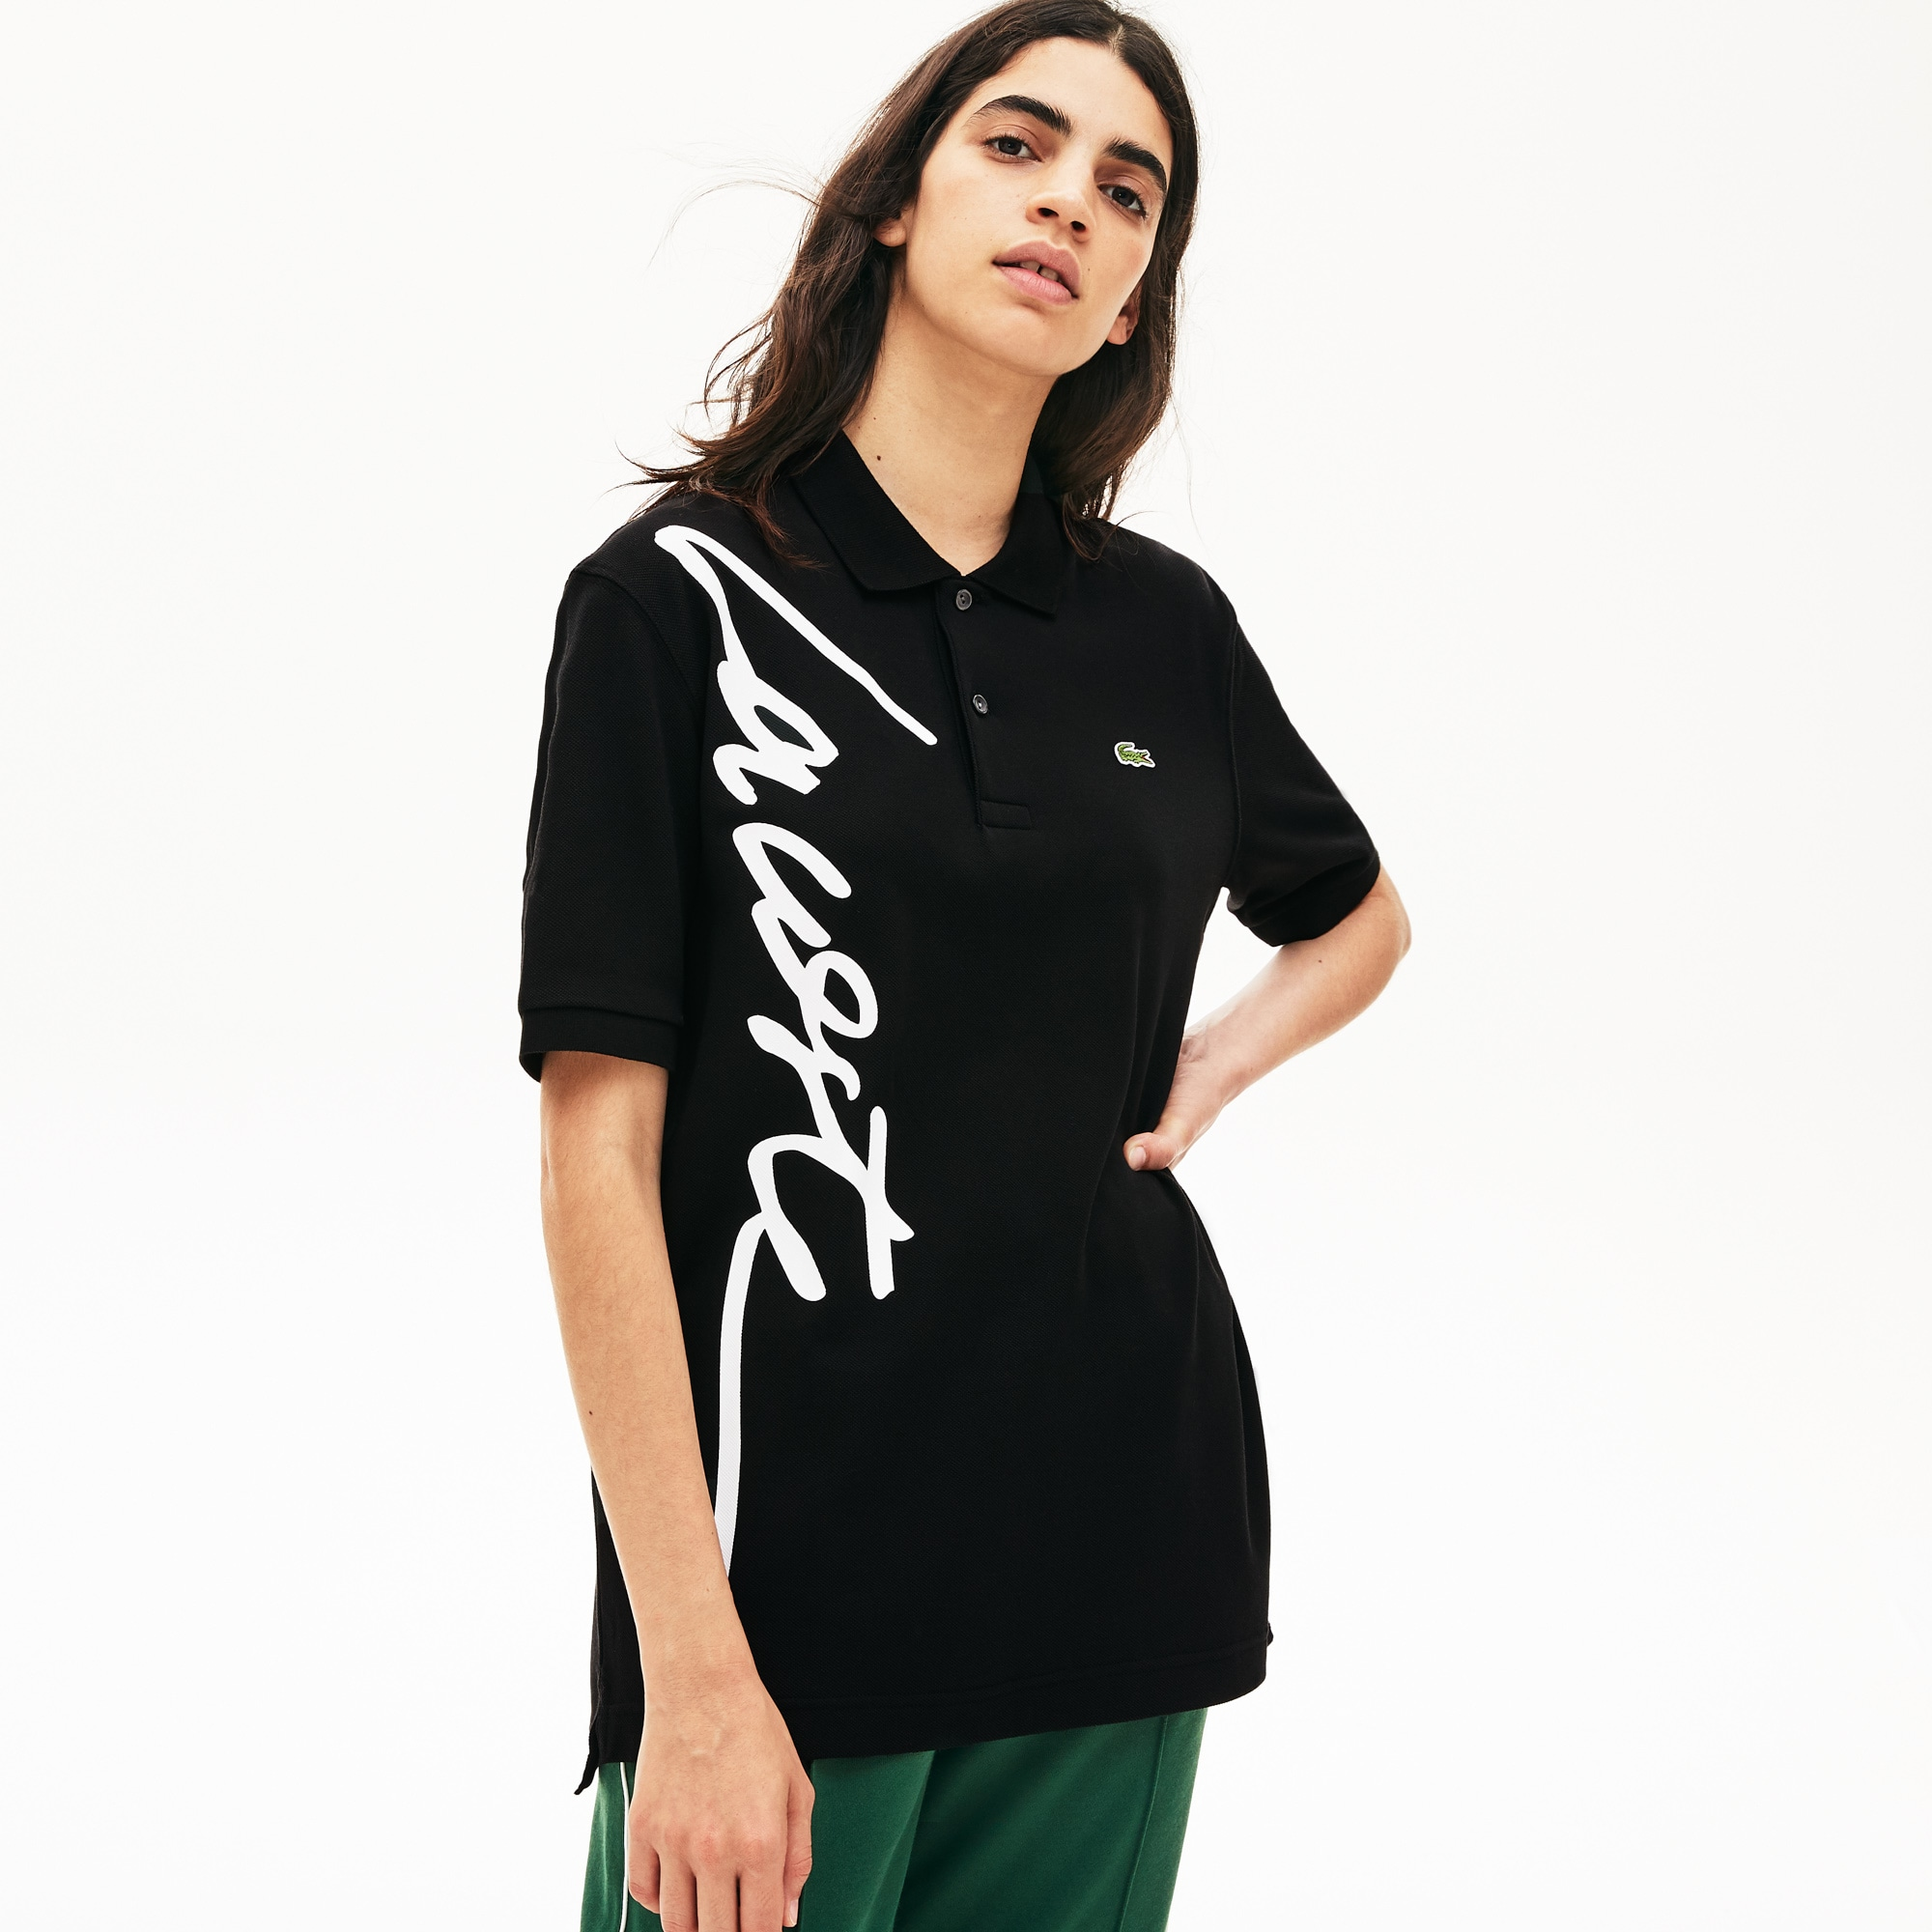 Unisex LIVE Signature Cotton Piqué Polo